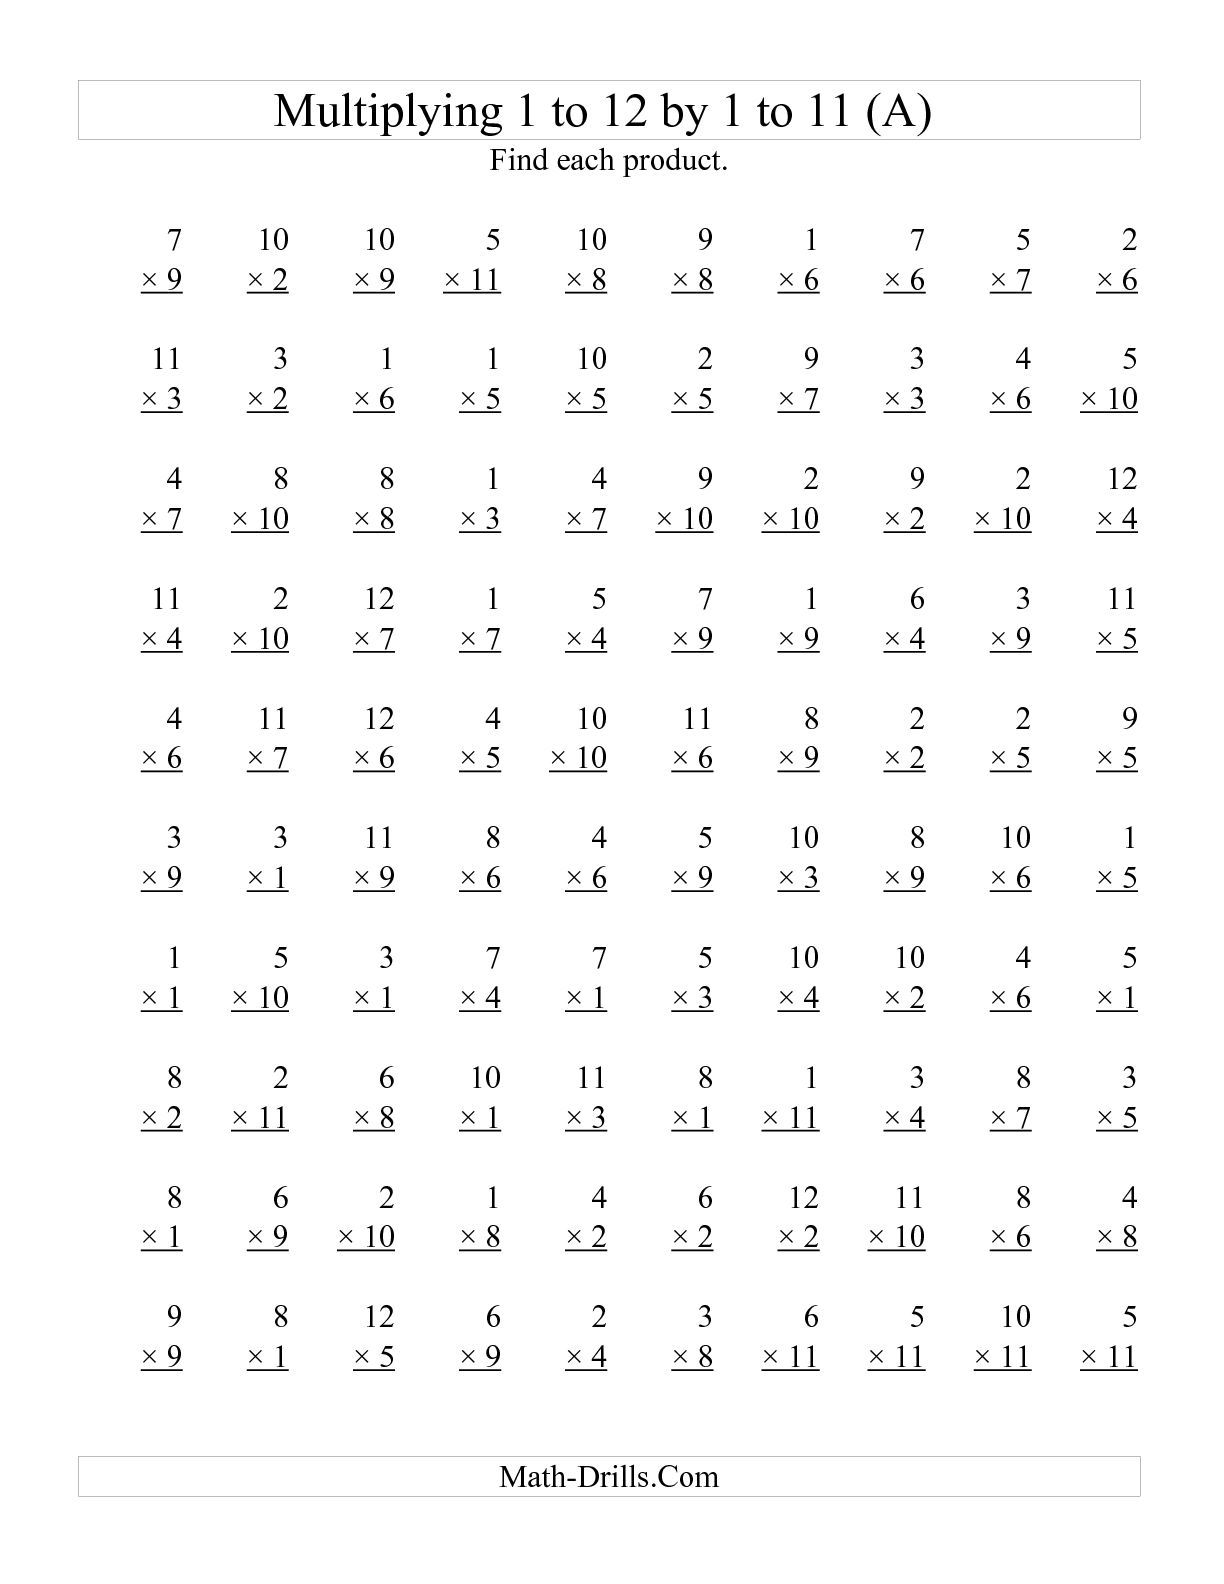 worksheet Multiplication Worksheets 100 Problems Timed Tests the 100 vertical questions multiplying 1 to 12 by 11 a math worksheet